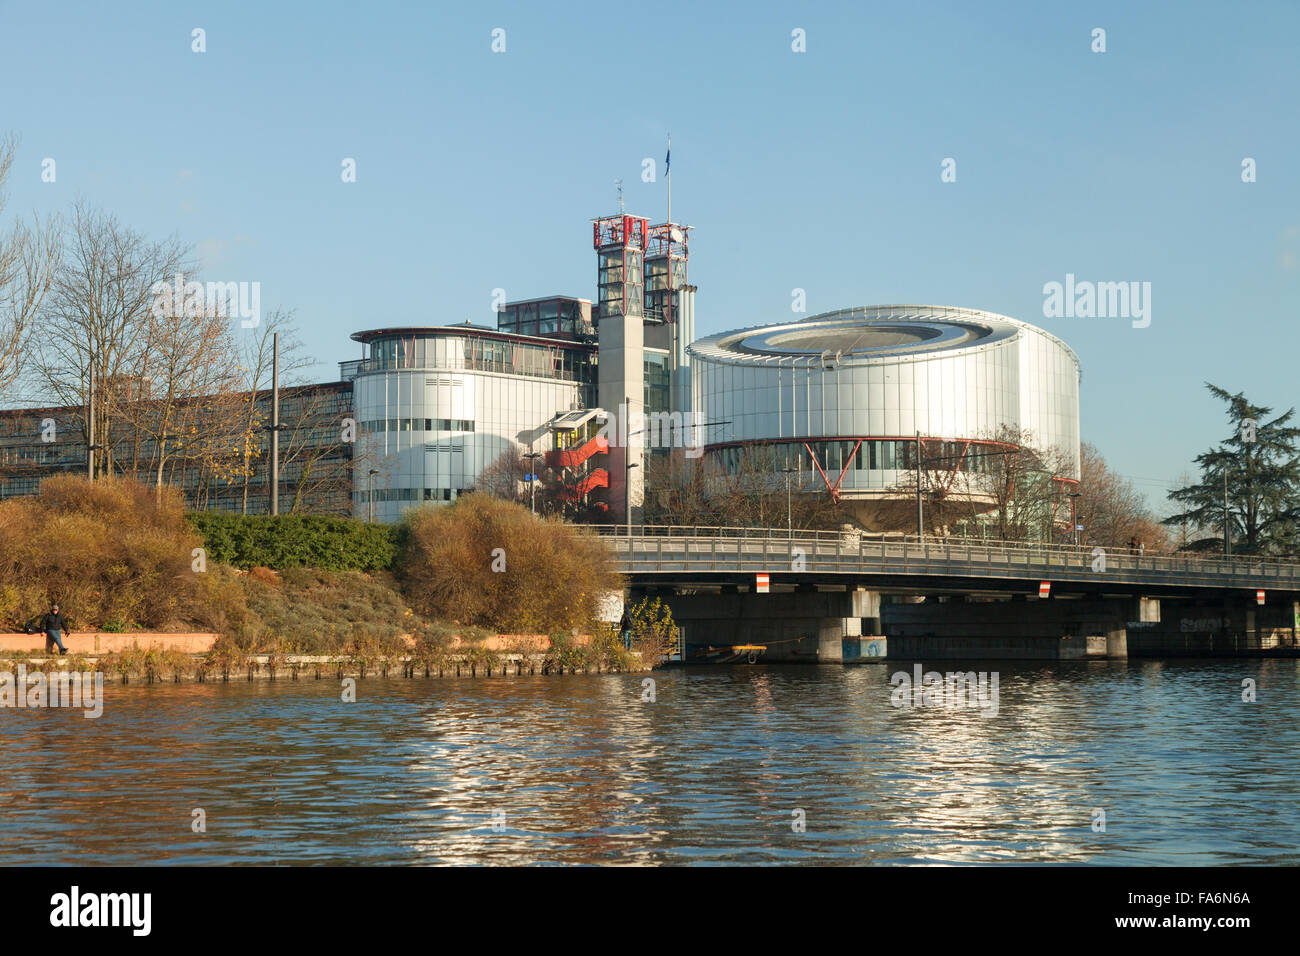 The European Court of Justice ( ECJ )building, Strasbourg Alsace France Europe - Stock Image